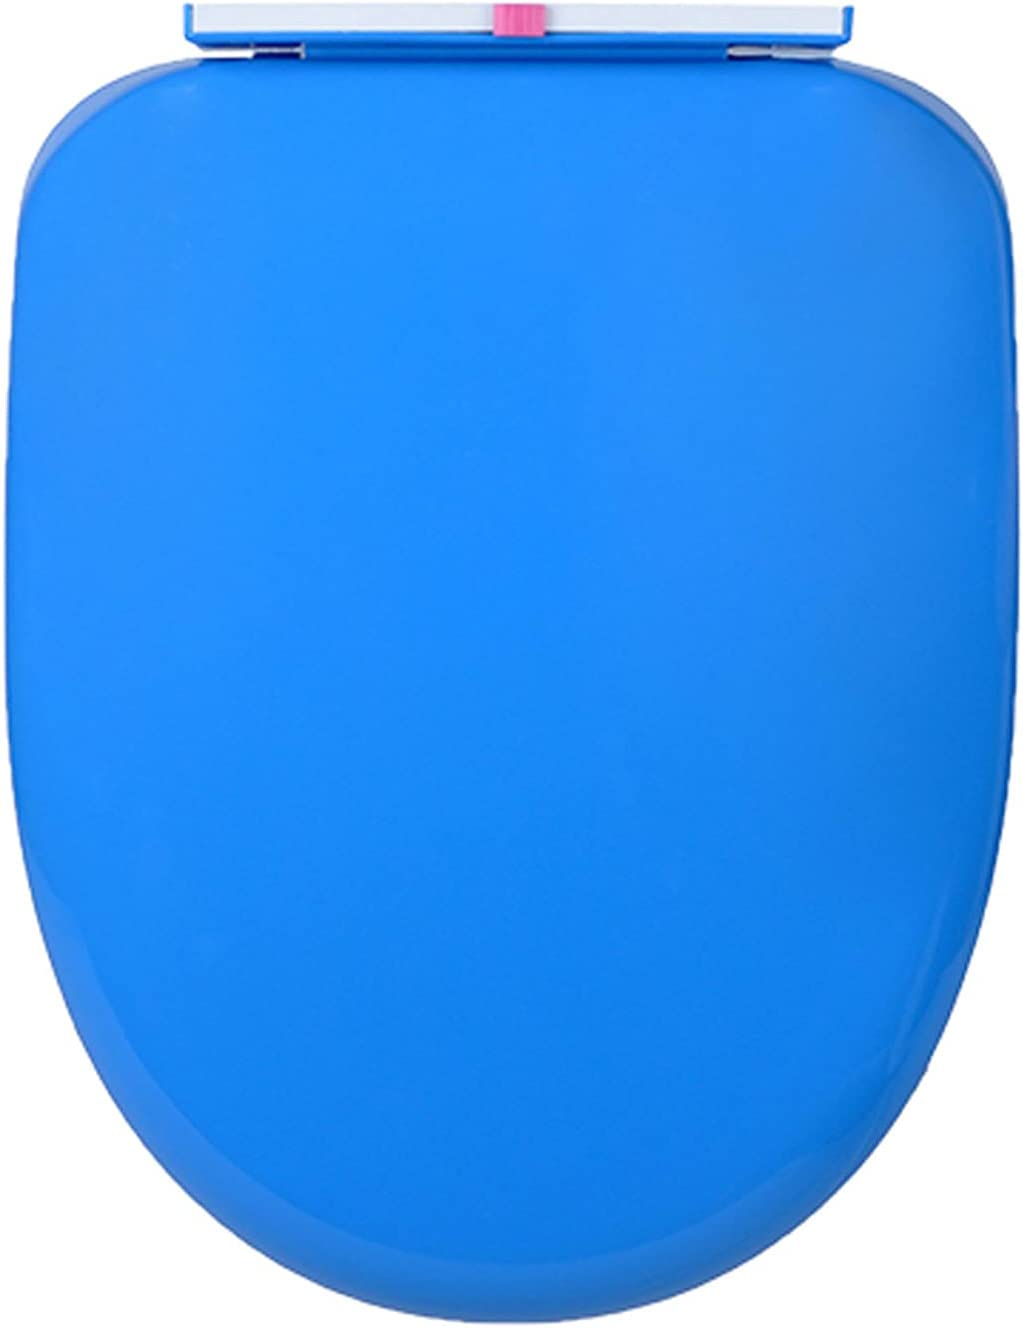 WEITONG Comfort Toilet Seat, Oval Toilet Seats Cover, Durable High Grade Plastic, Slow Close and Removes Easy for Cleaning, Multiple Colour